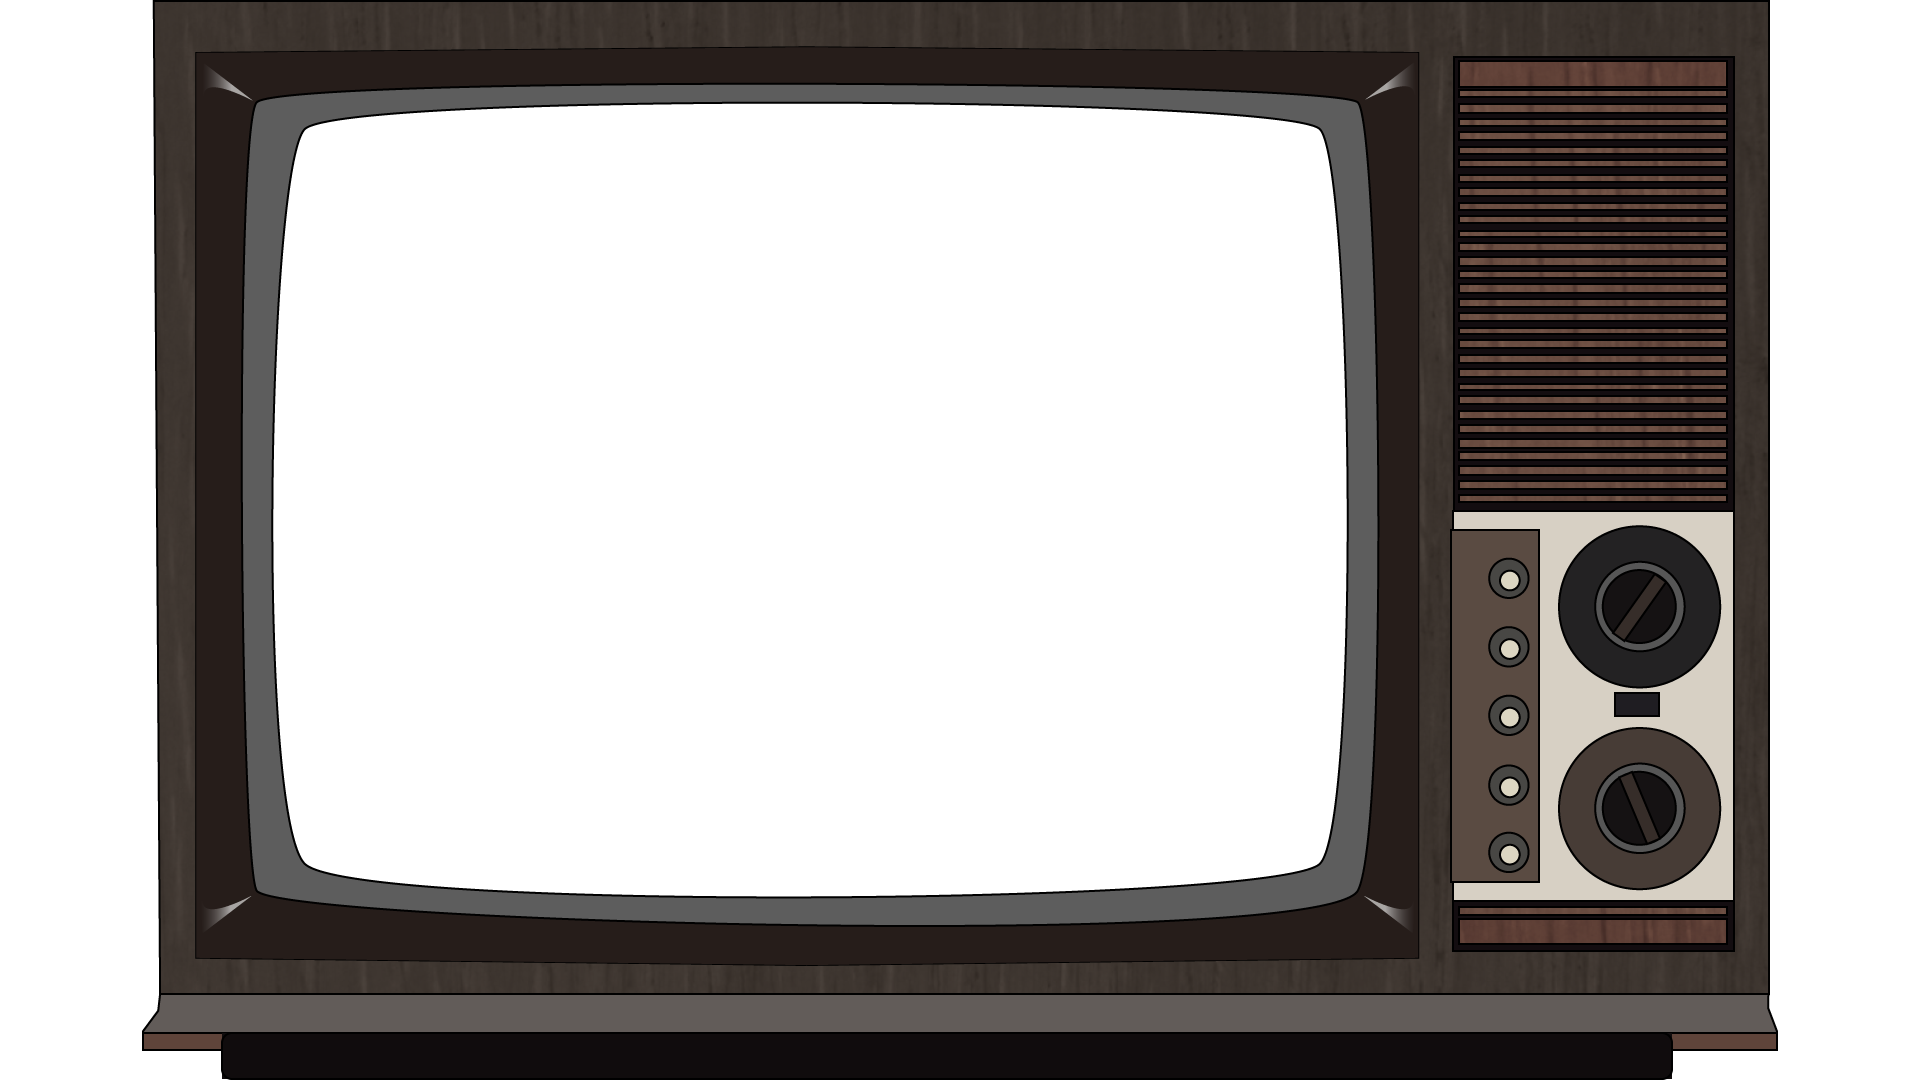 Old Television PNG Image Vintage tv, Television, Framed tv